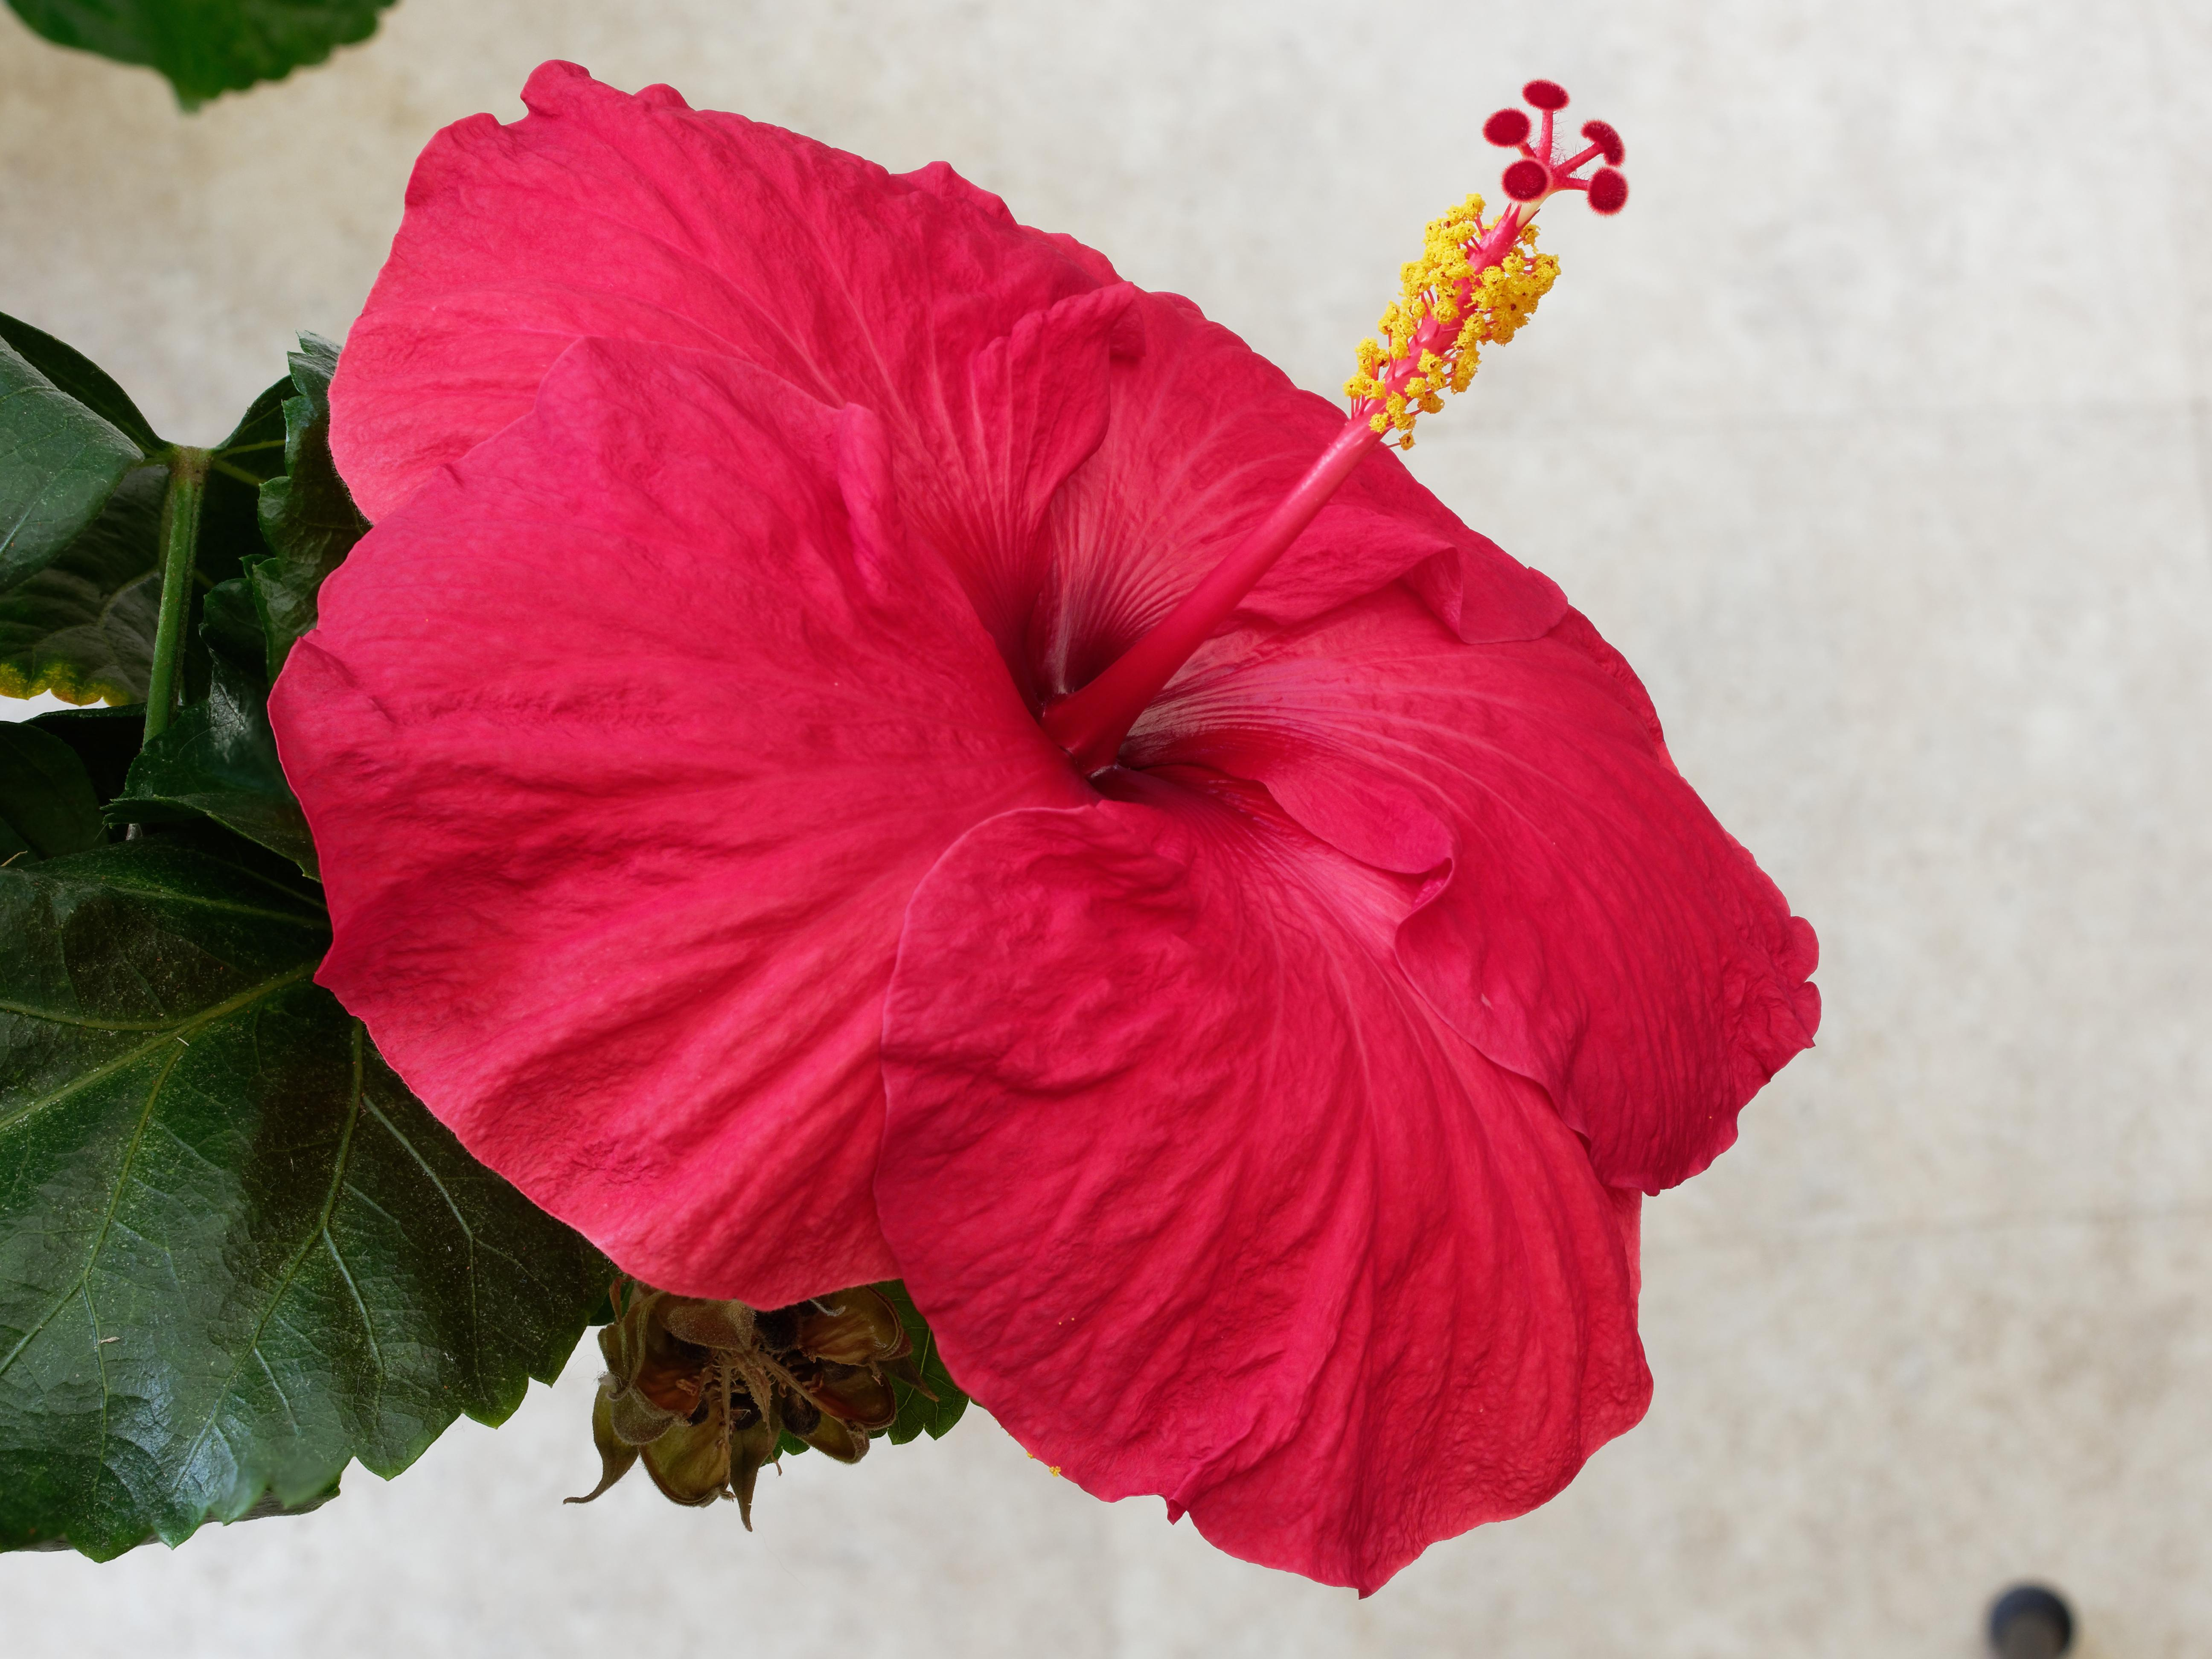 This should be Hibiscus-1-DMap.jpeg.  Is it missing?